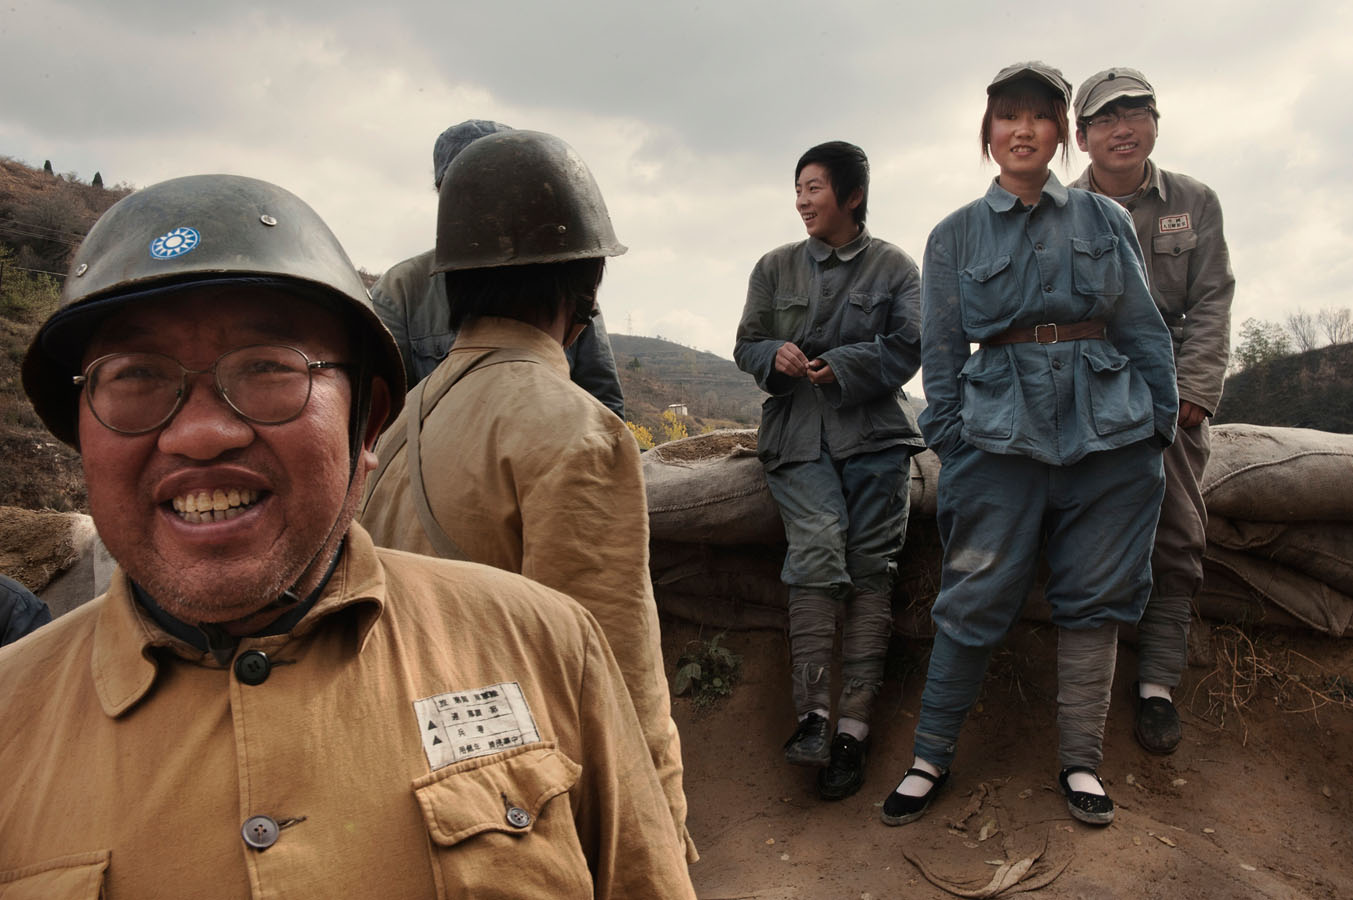 n Yan'An, actors in the reeanactment of the defence of Yan'an, a battle between the Kuomindang and the Red Army, are waiting while a power failure has delayed the start of the show. Eventually it will be cancelled.